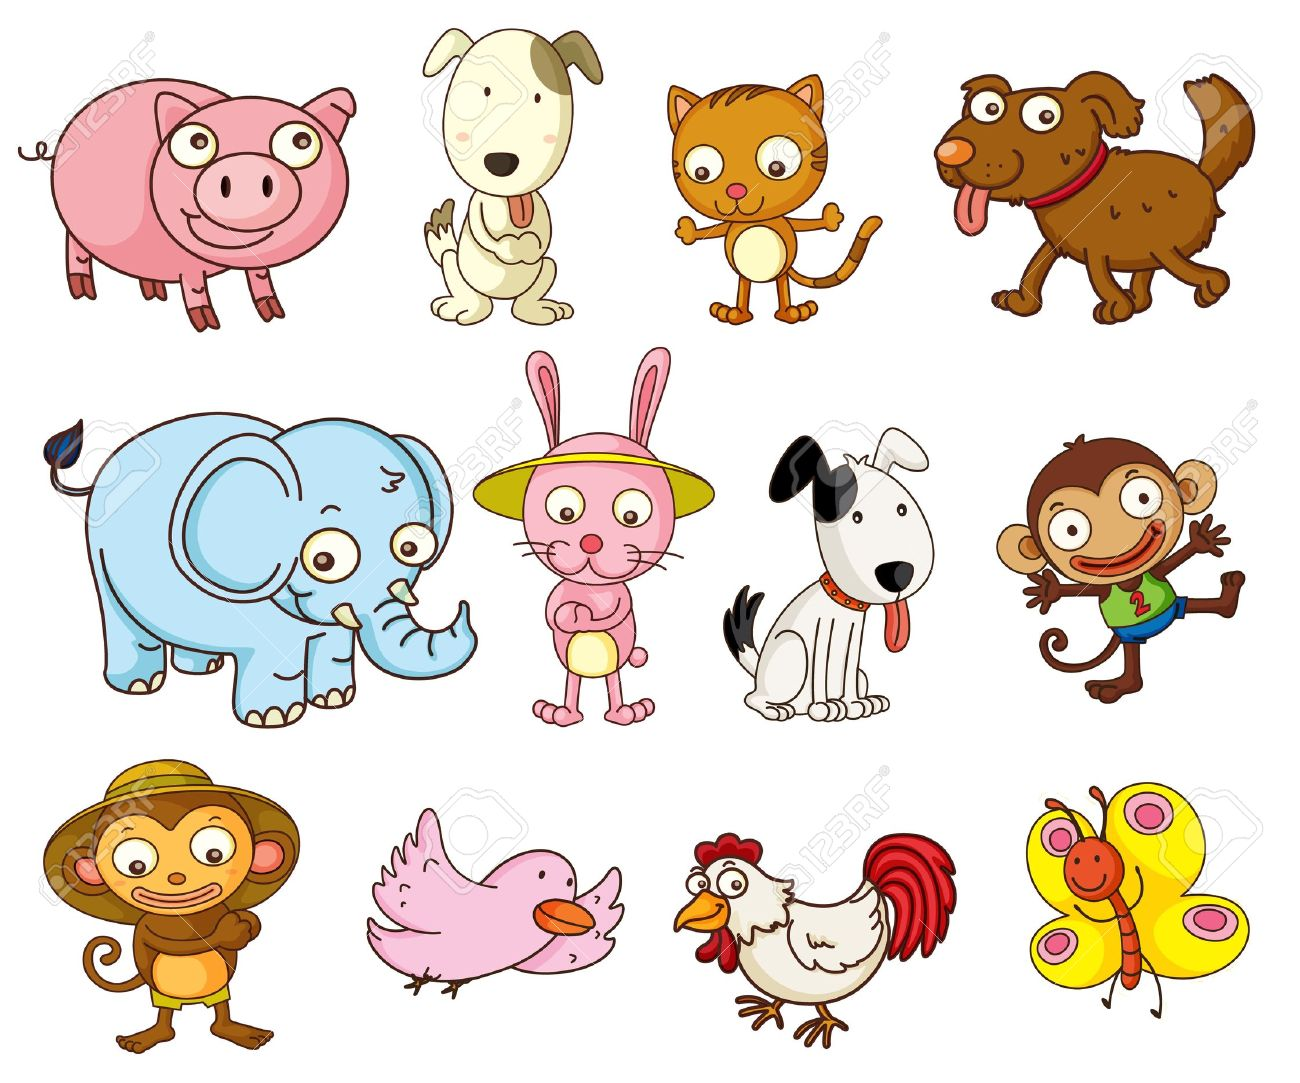 Clipart animals pictures.